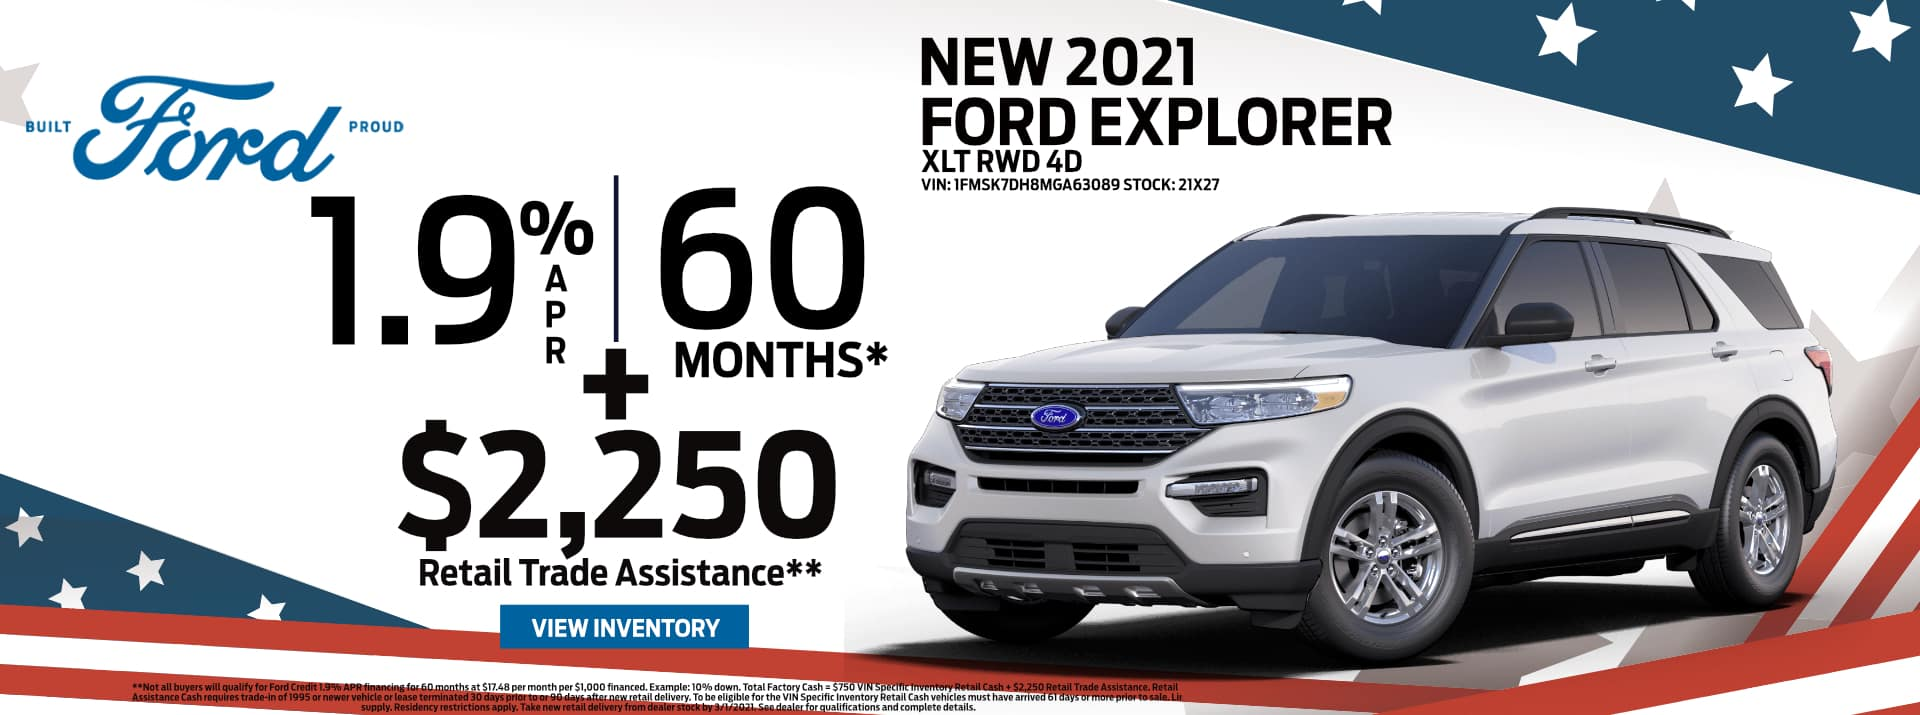 Revised_February-2021 Ford explorer Save PSM